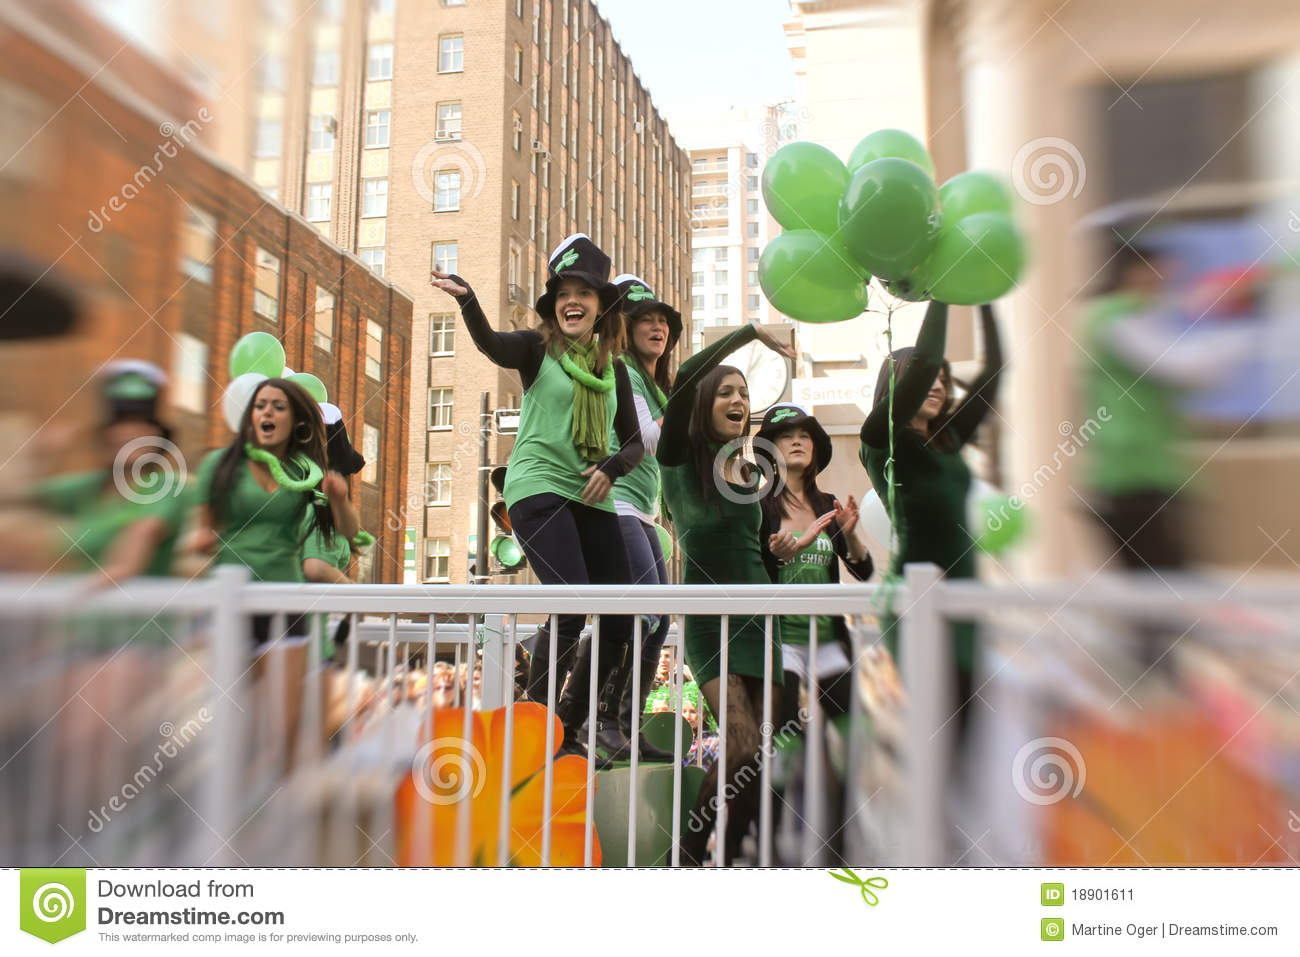 St.Patrick Tag in Montreal.